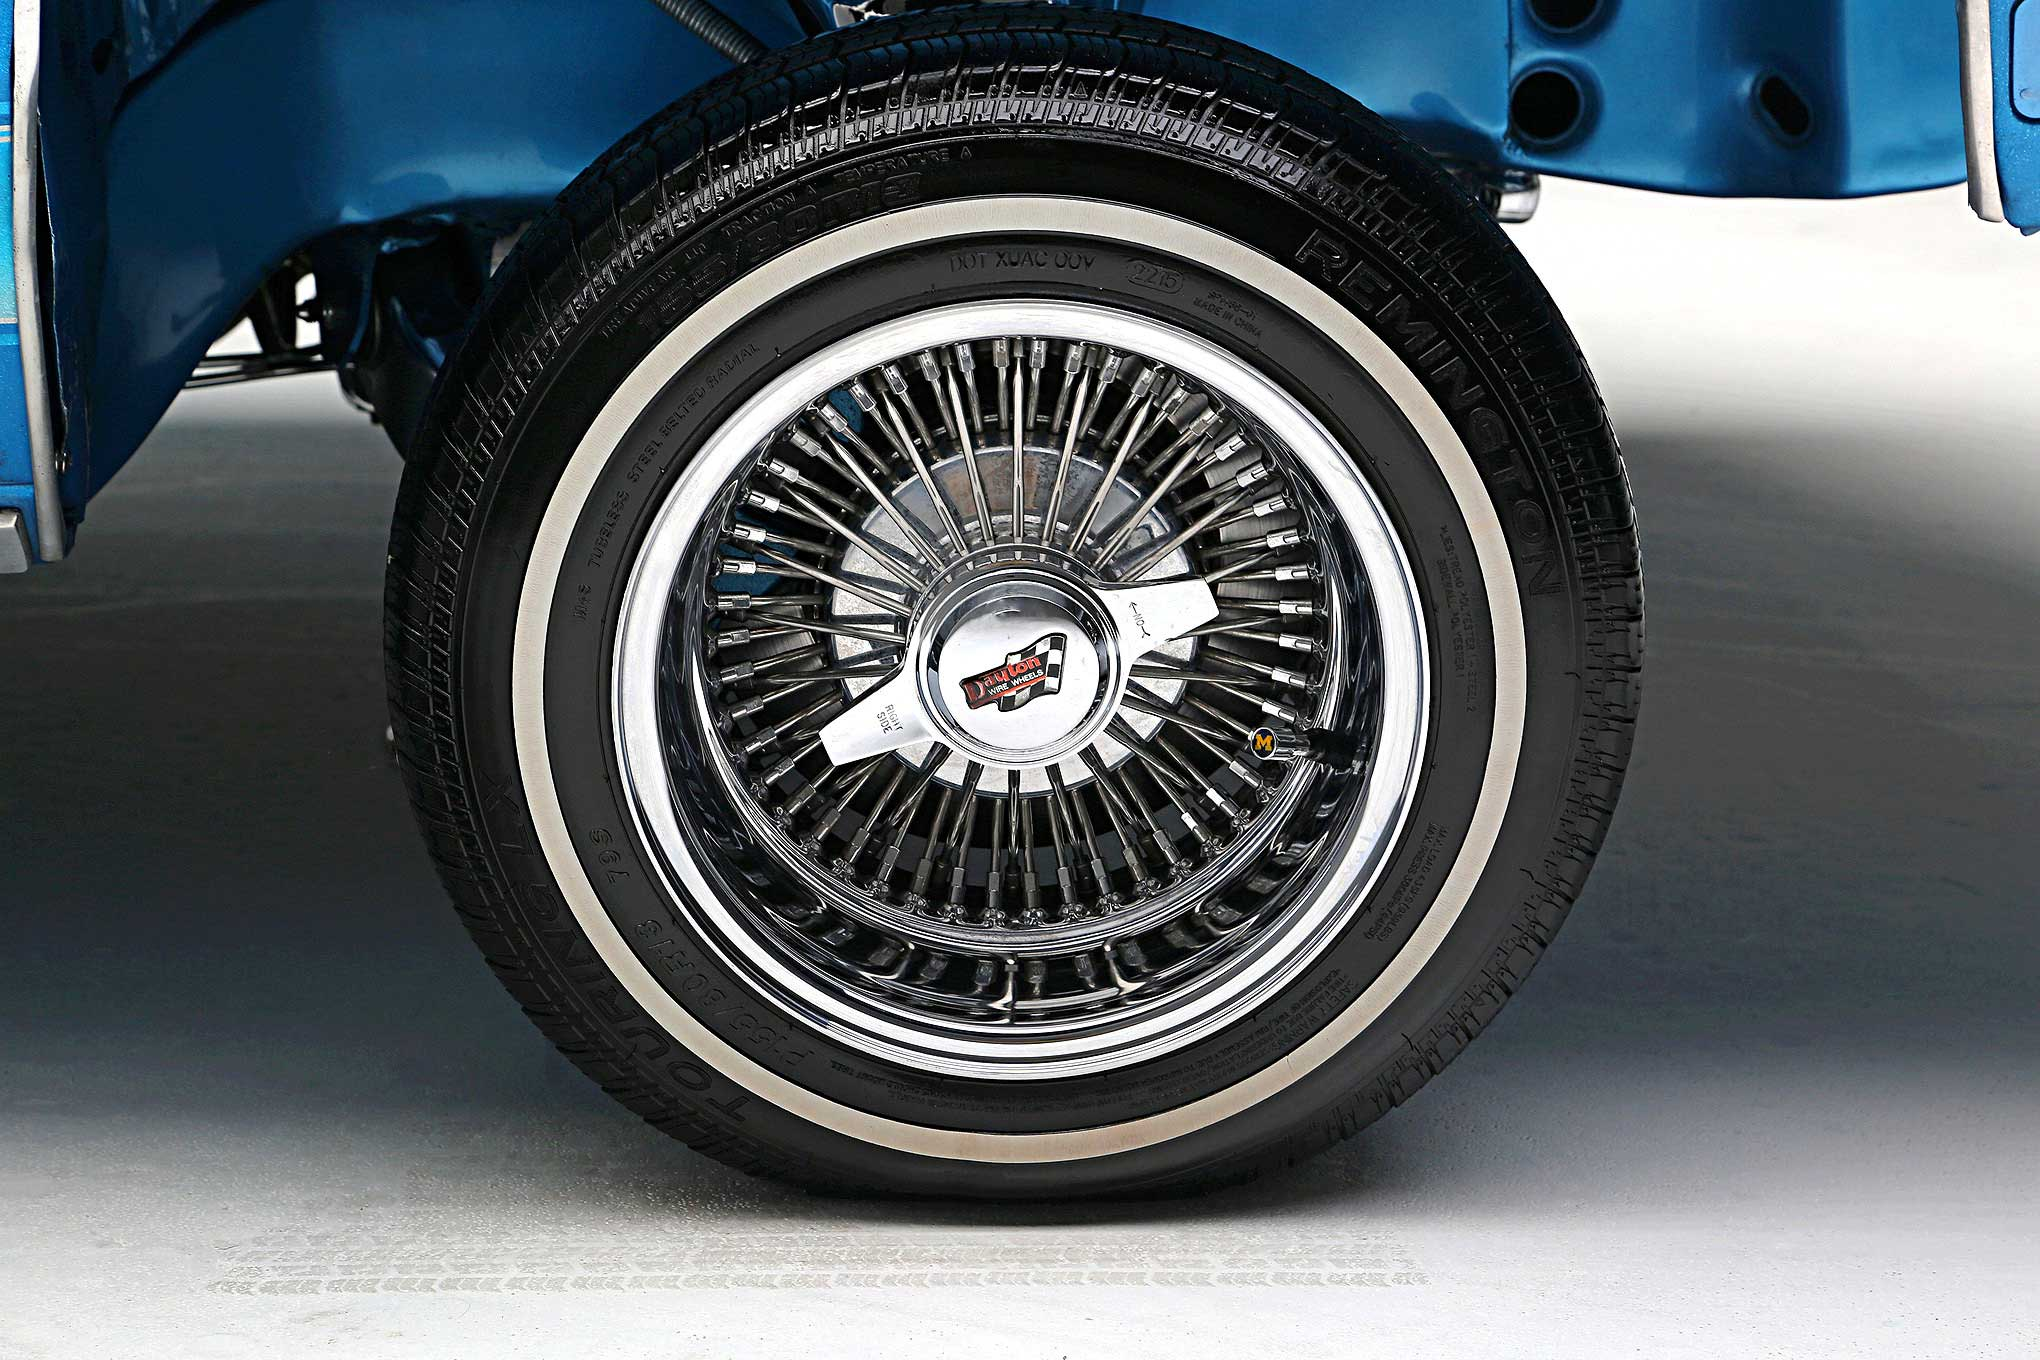 Lowrider Rims And Tires >> 1975 Chevrolet Caprice - Common Ground